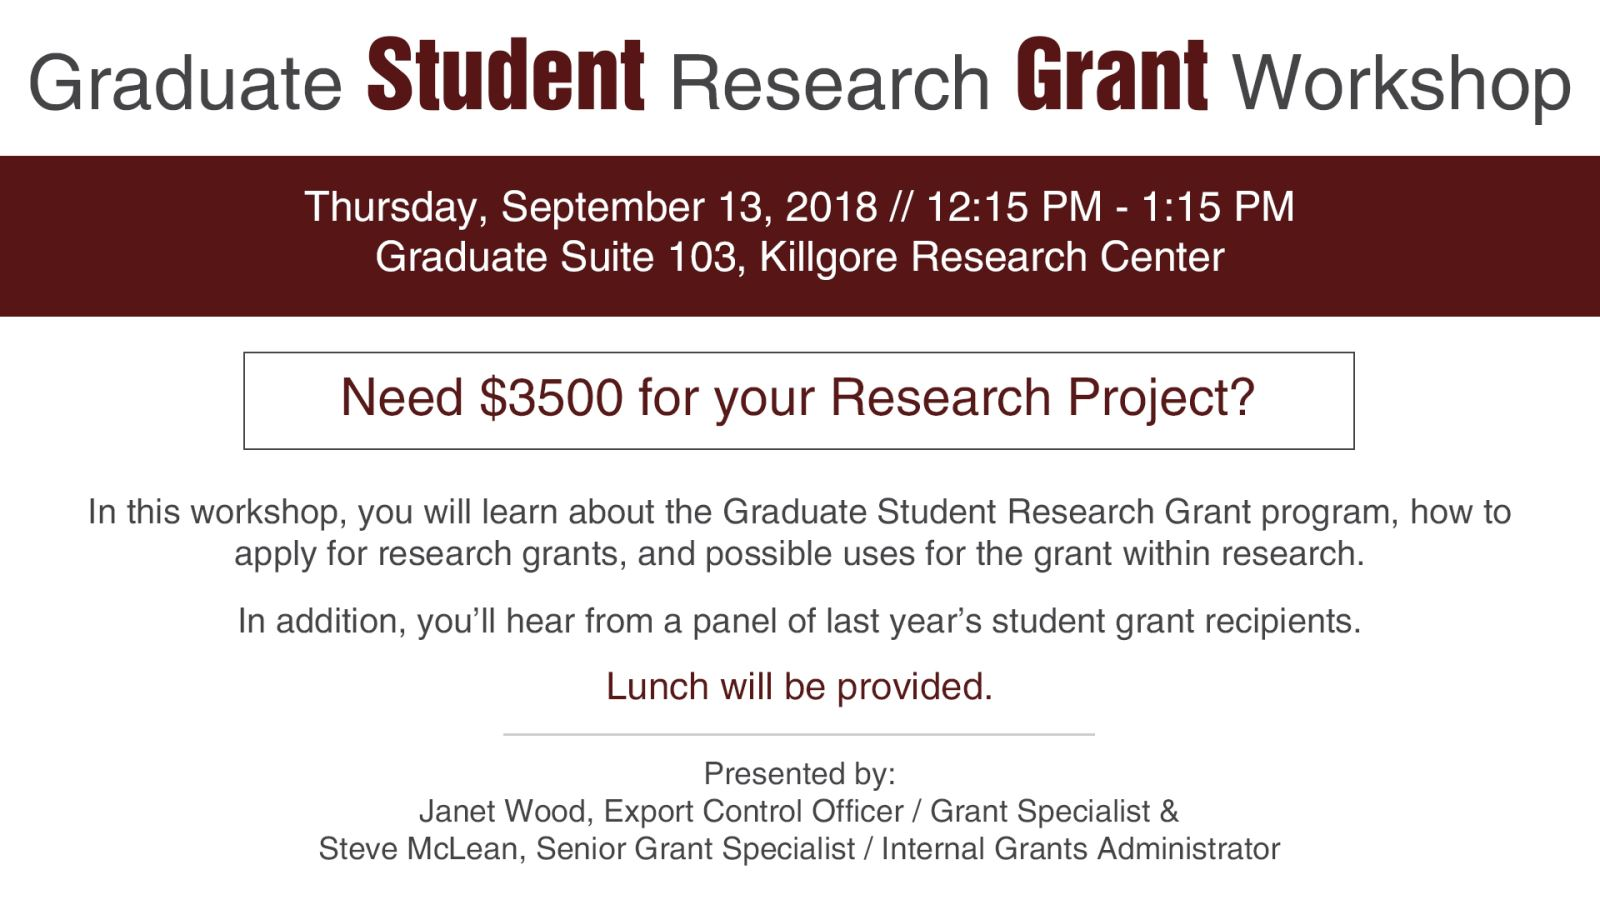 Graduate Student Research Grant Workshop